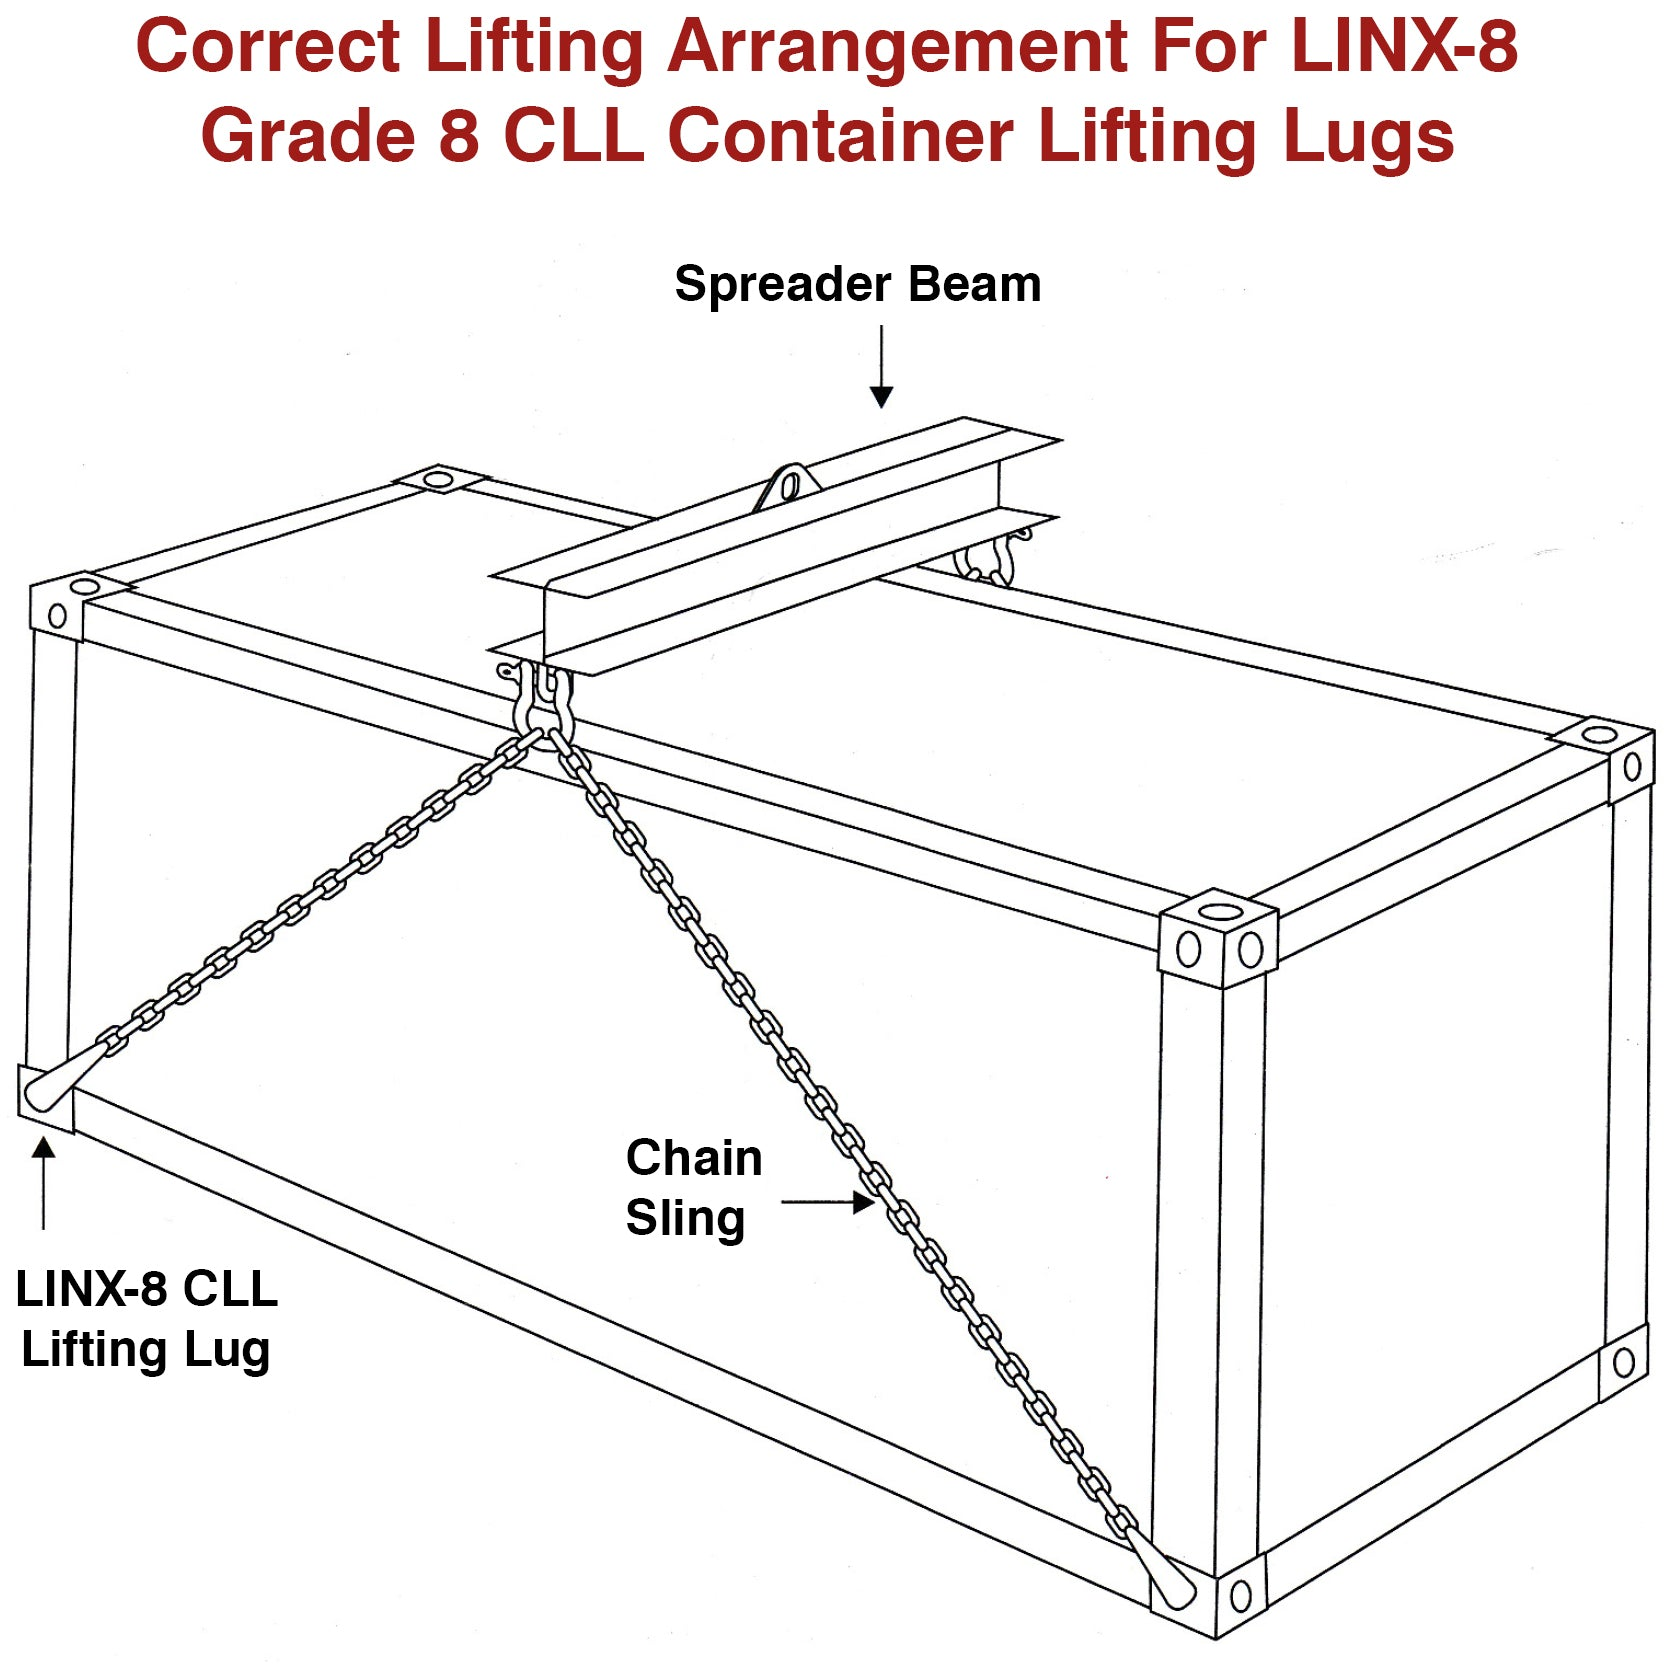 LINX-8 G8 Container Lifting Lug CLL